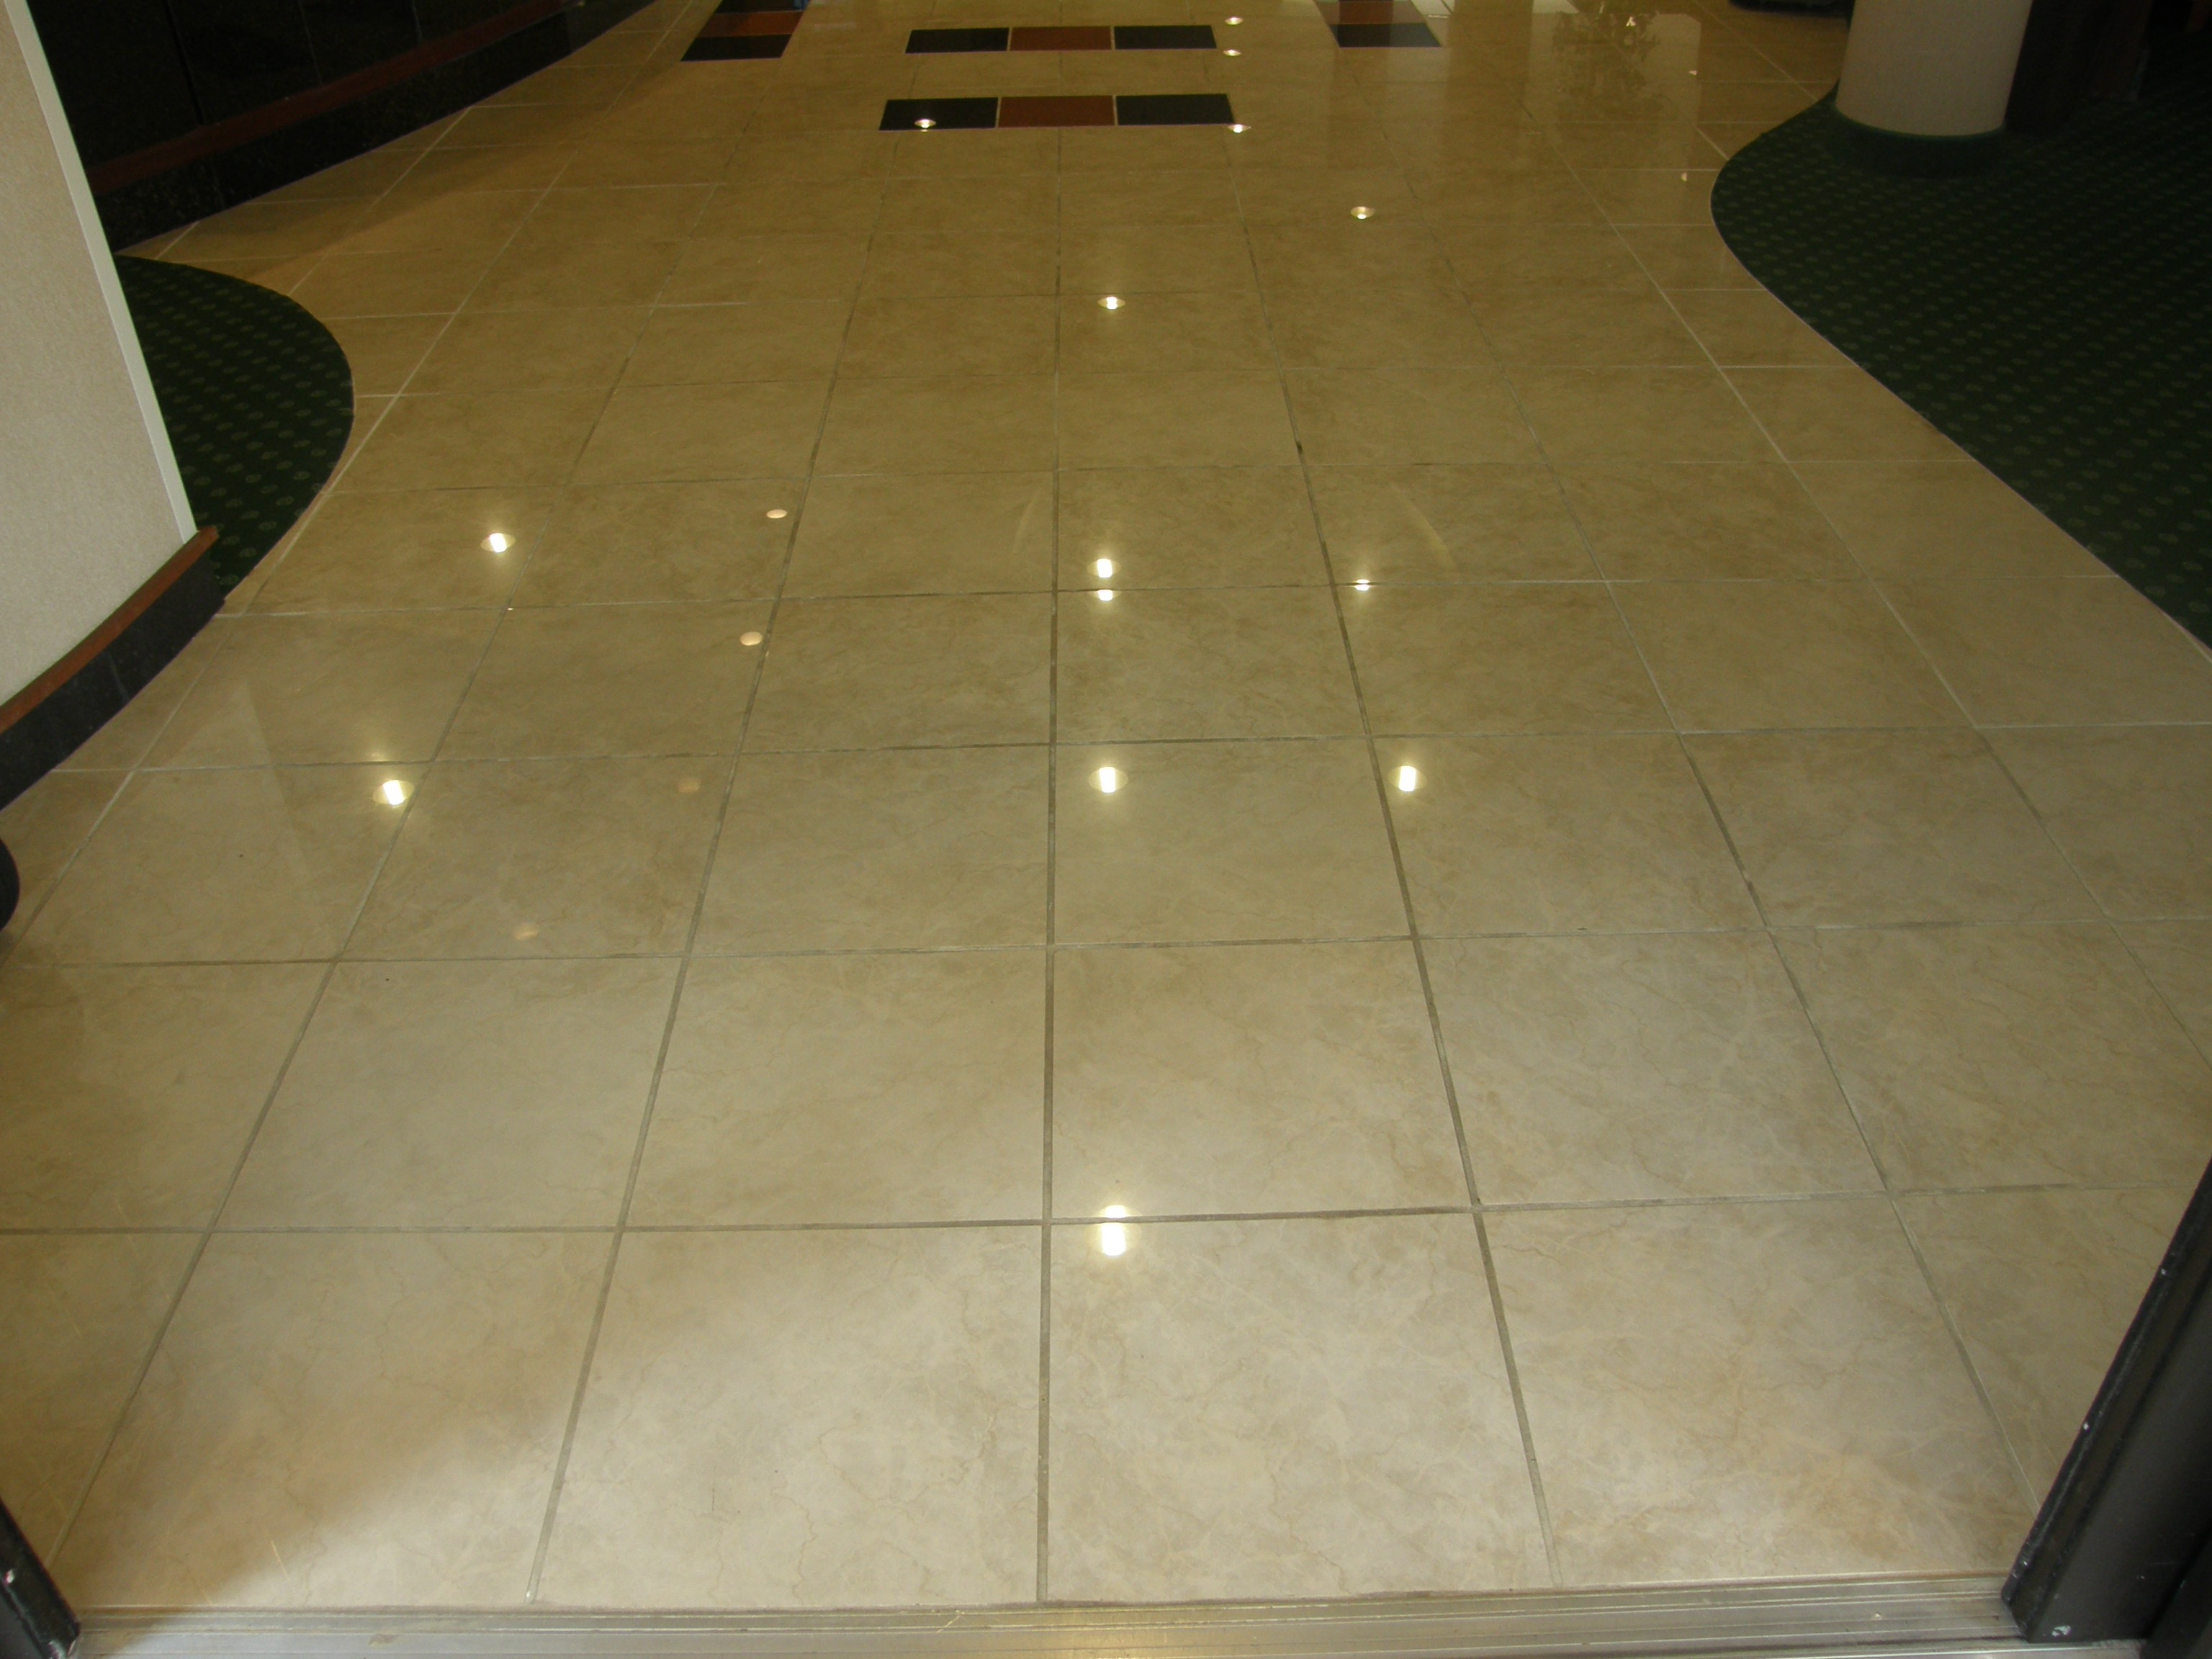 Tile Grout Cleaning, Color Sealing, Repair, Shower Restoration